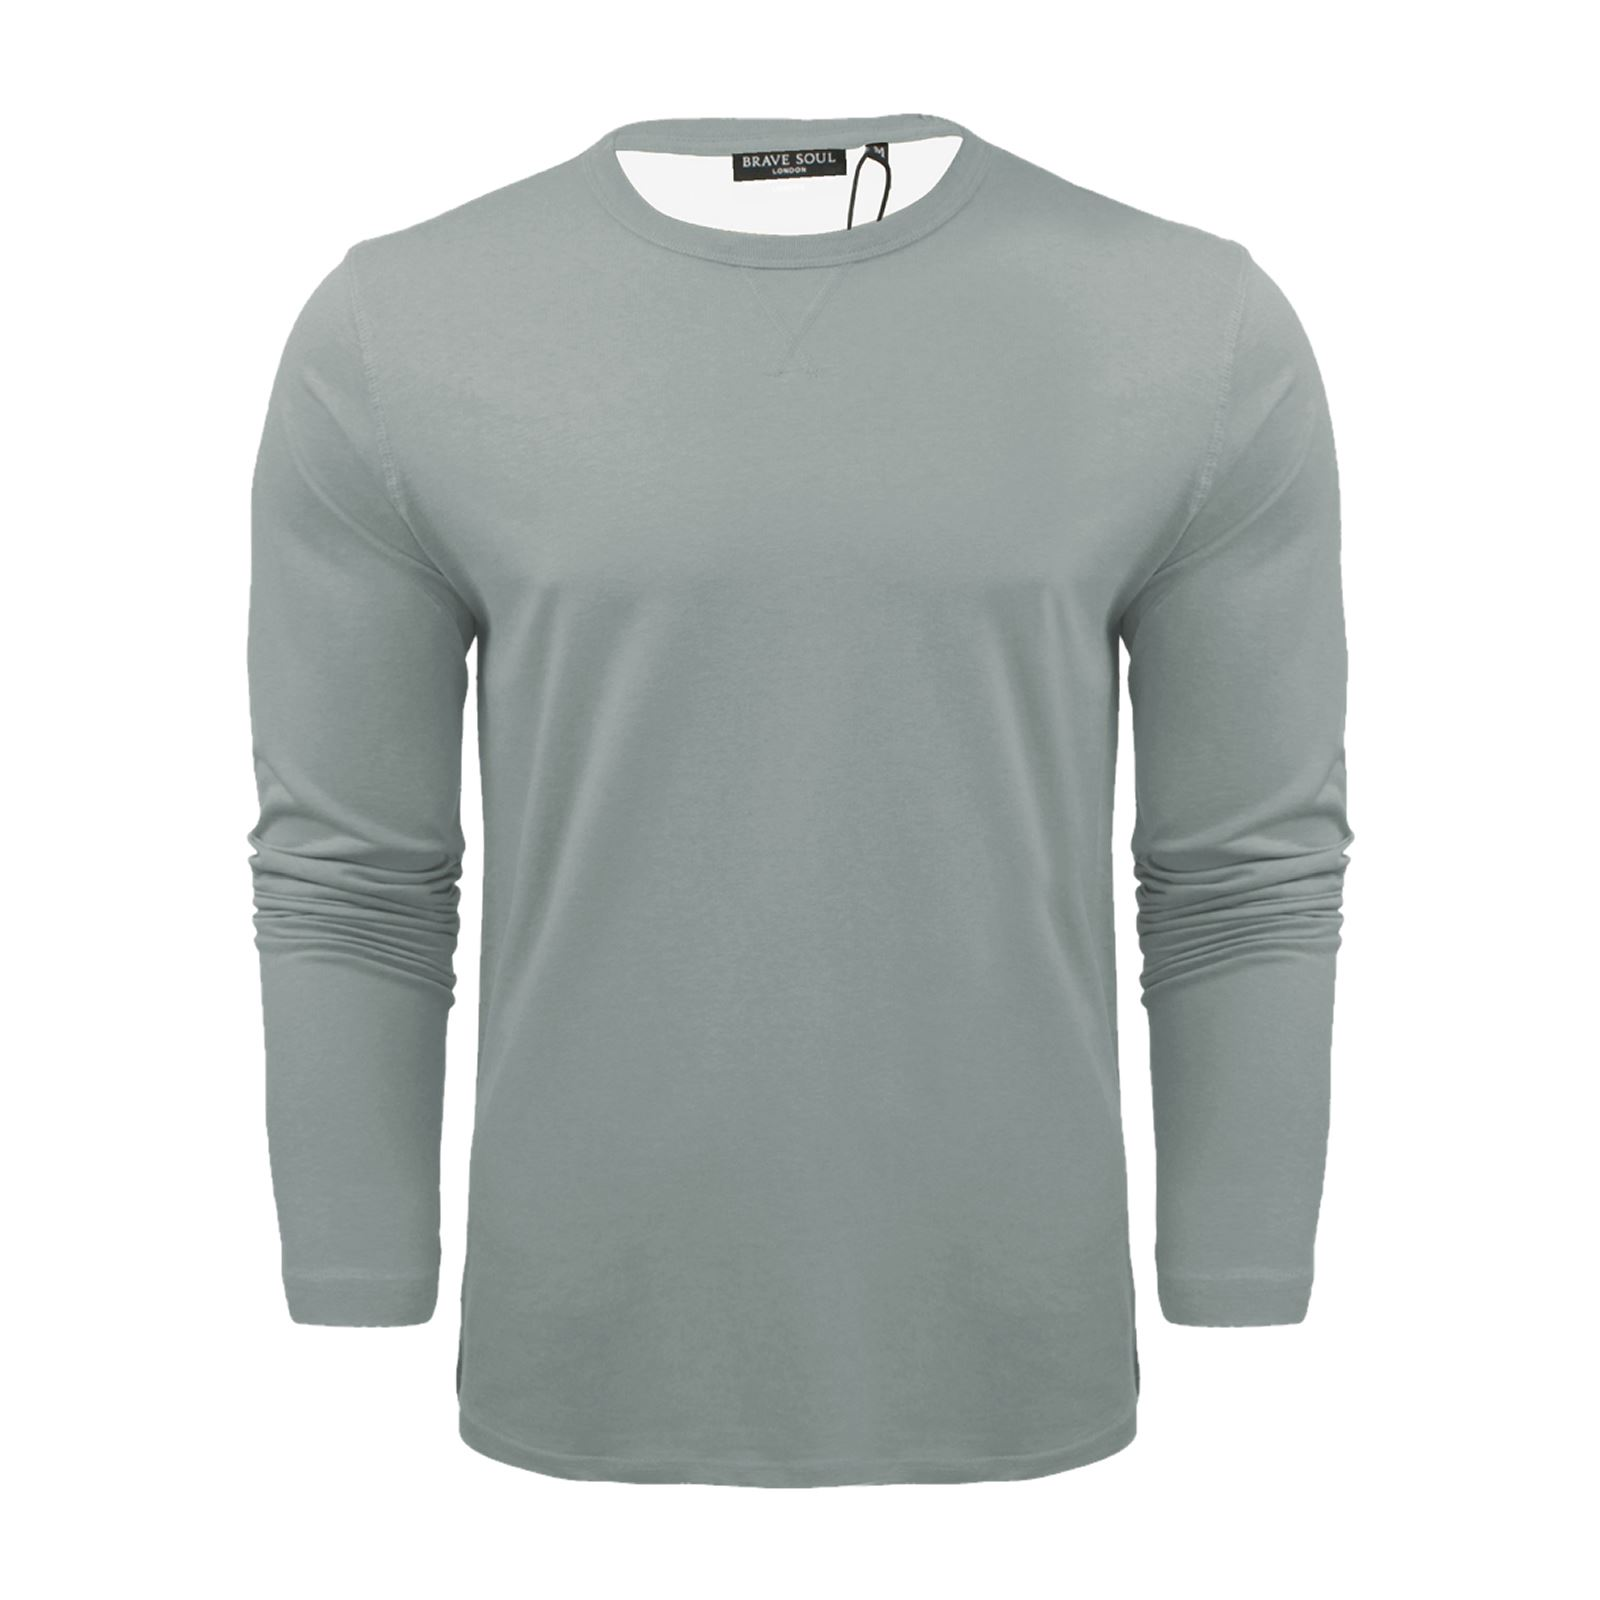 Mens-T-Shirt-by-Brave-Soul-Prague-Cotton-Long-Sleeved-Crew-Neck-Casual-Top thumbnail 31